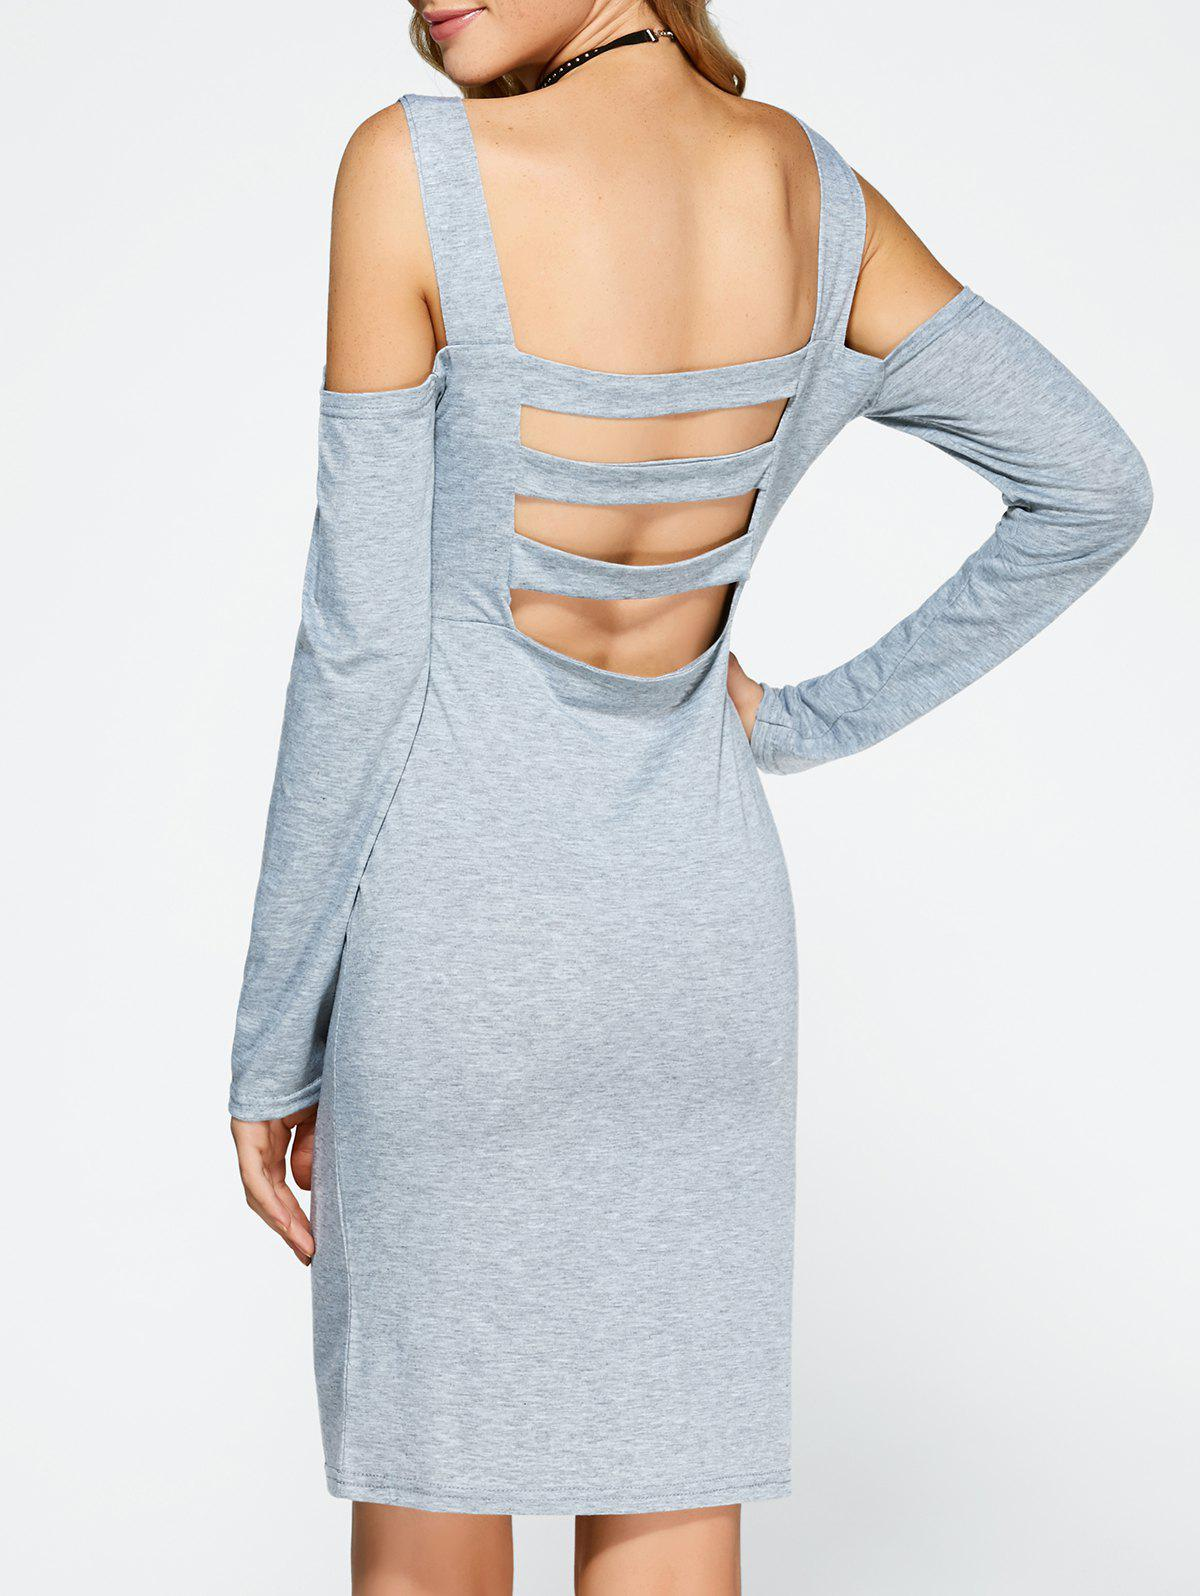 Shop Cold Shoulder Backless Bandage Sheath Cocktail Dress